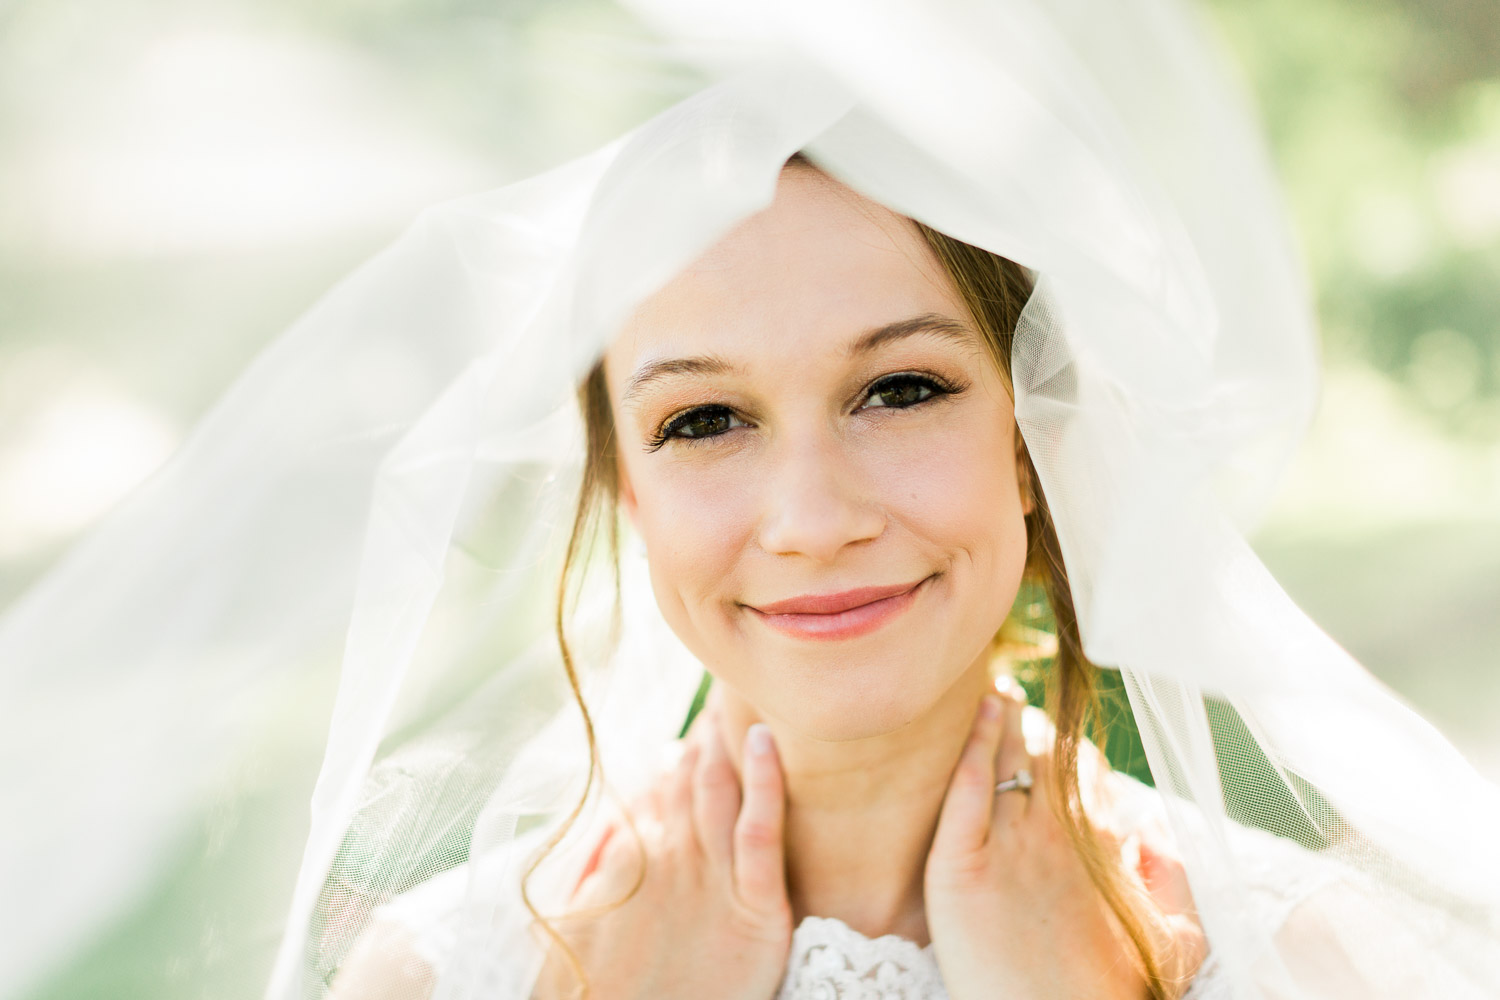 Bride (Katie) smiles during her bridal session at  The Oaks at Salem . Hair by  Kaitlin Savage at Liane Carroll Salon  and makeup by  Merle Norman of Fuquay Varina